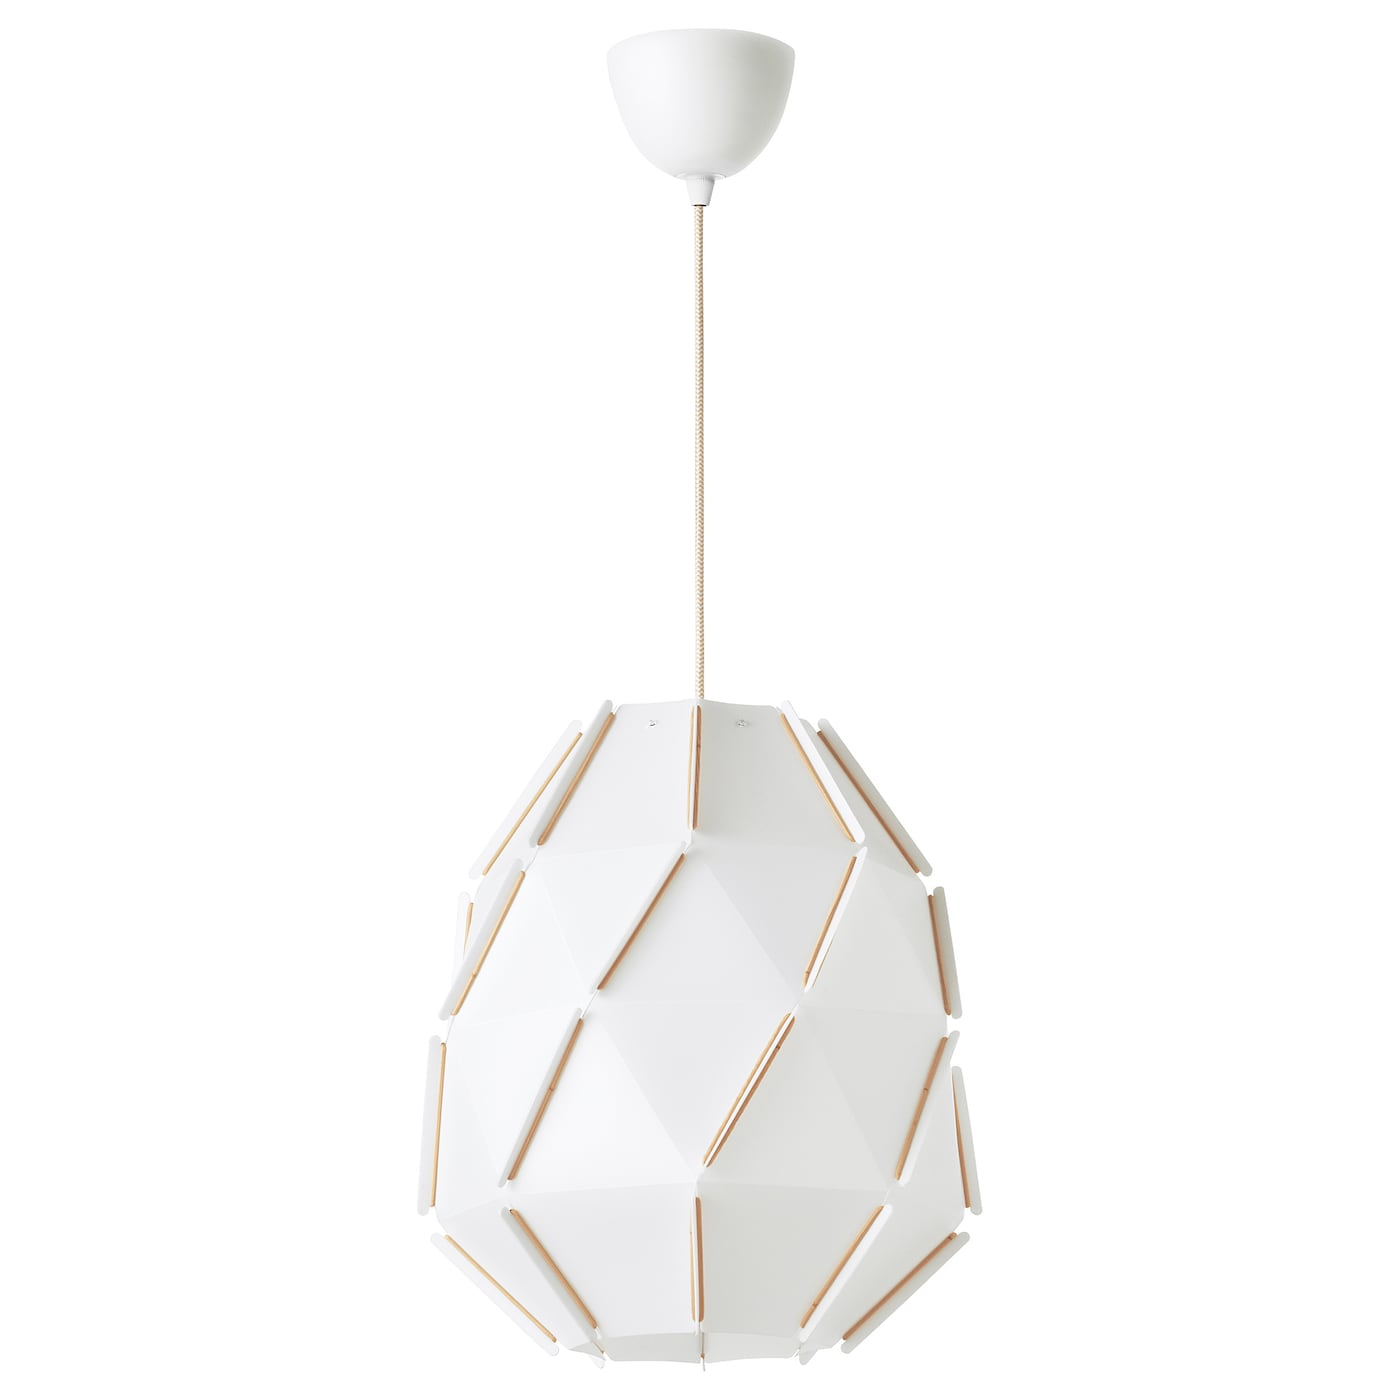 IKEA SJÖPENNA pendant lamp Diffused light that provides good general light in the room.